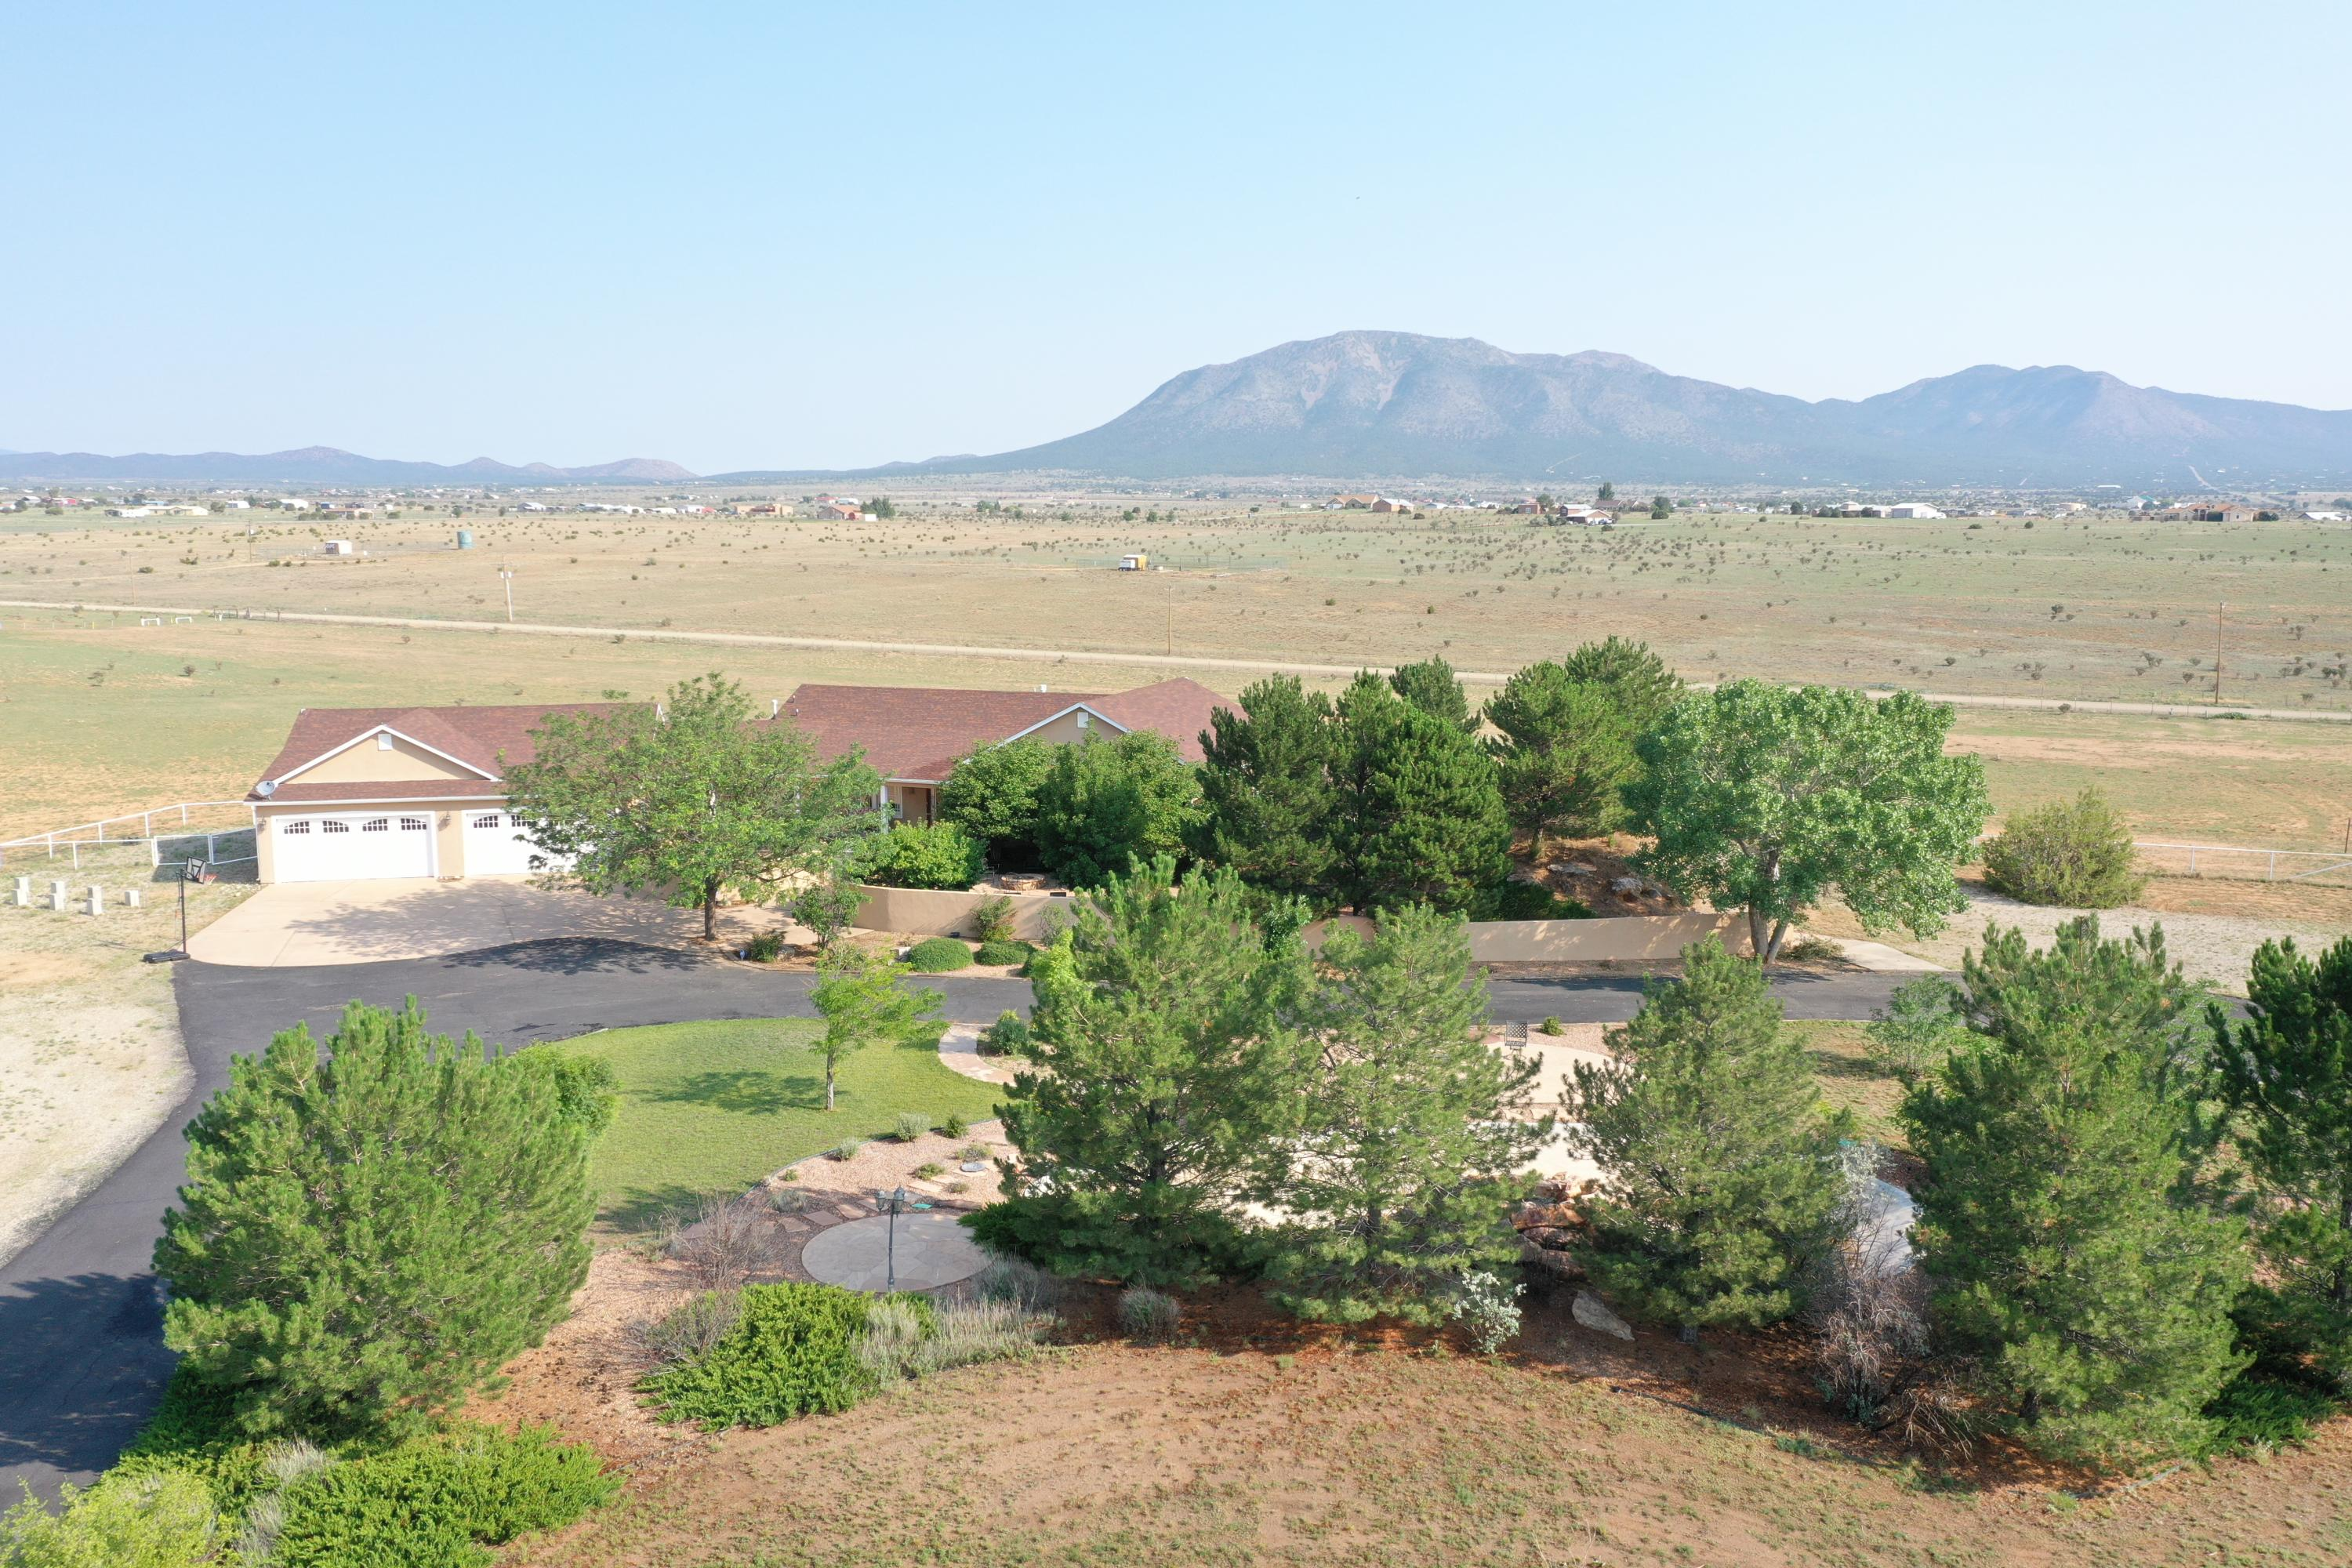 This is your rare chance to own the premier equestrian property in Edgewood, NM and southern Santa Fe County! A luxurious estate home 6130 sqft heated and a guest house of 989 sqft heated all on 38.5 acres. Main home boasts hardwood oak flooring, grand open great room with a formal dining area, breakfast nook, gourmet dream kitchen, and sweeping mountain views of the Sandias and South Mountain. The family room off the entry is perfect for relaxing activities away from the crowds. The garage leads you to a home gym, walk in pantry, and into the kitchen. Master Suite is large enough for a sitting area and two master bathroom suites: 3/4 bath in master and luxurious spa like full bath in the master suite. 30 mins drive to ABQ and 50 mins drive to Santa Fe! See additional info for more...